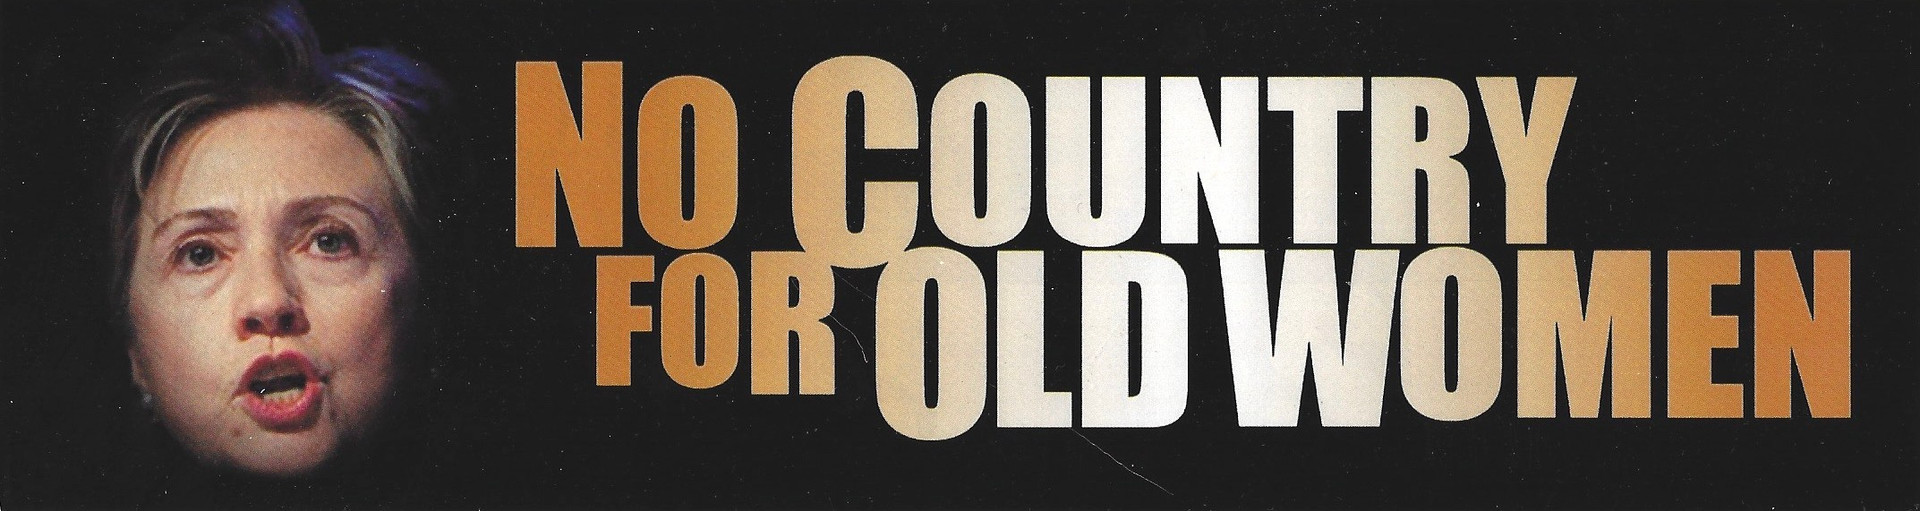 No Country for Old Women